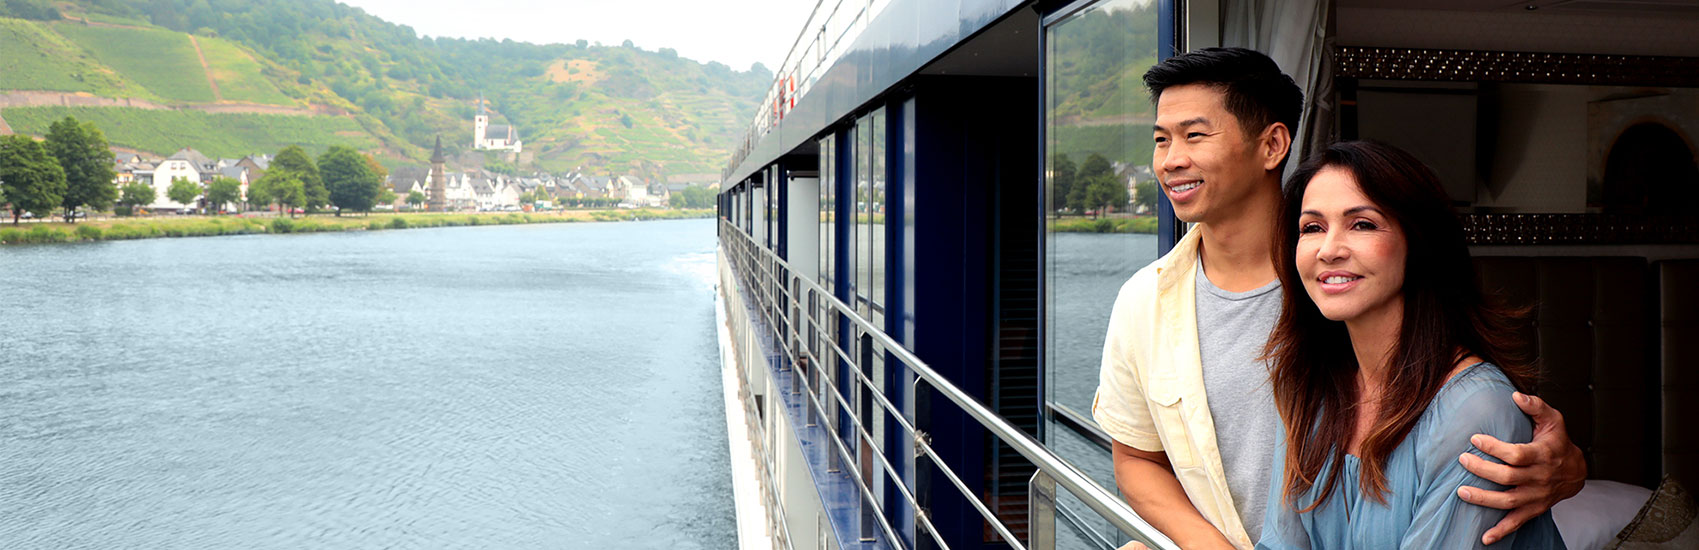 Receive up to Free Airfare or Cruise Savings with AmaWaterways River Cruises 2